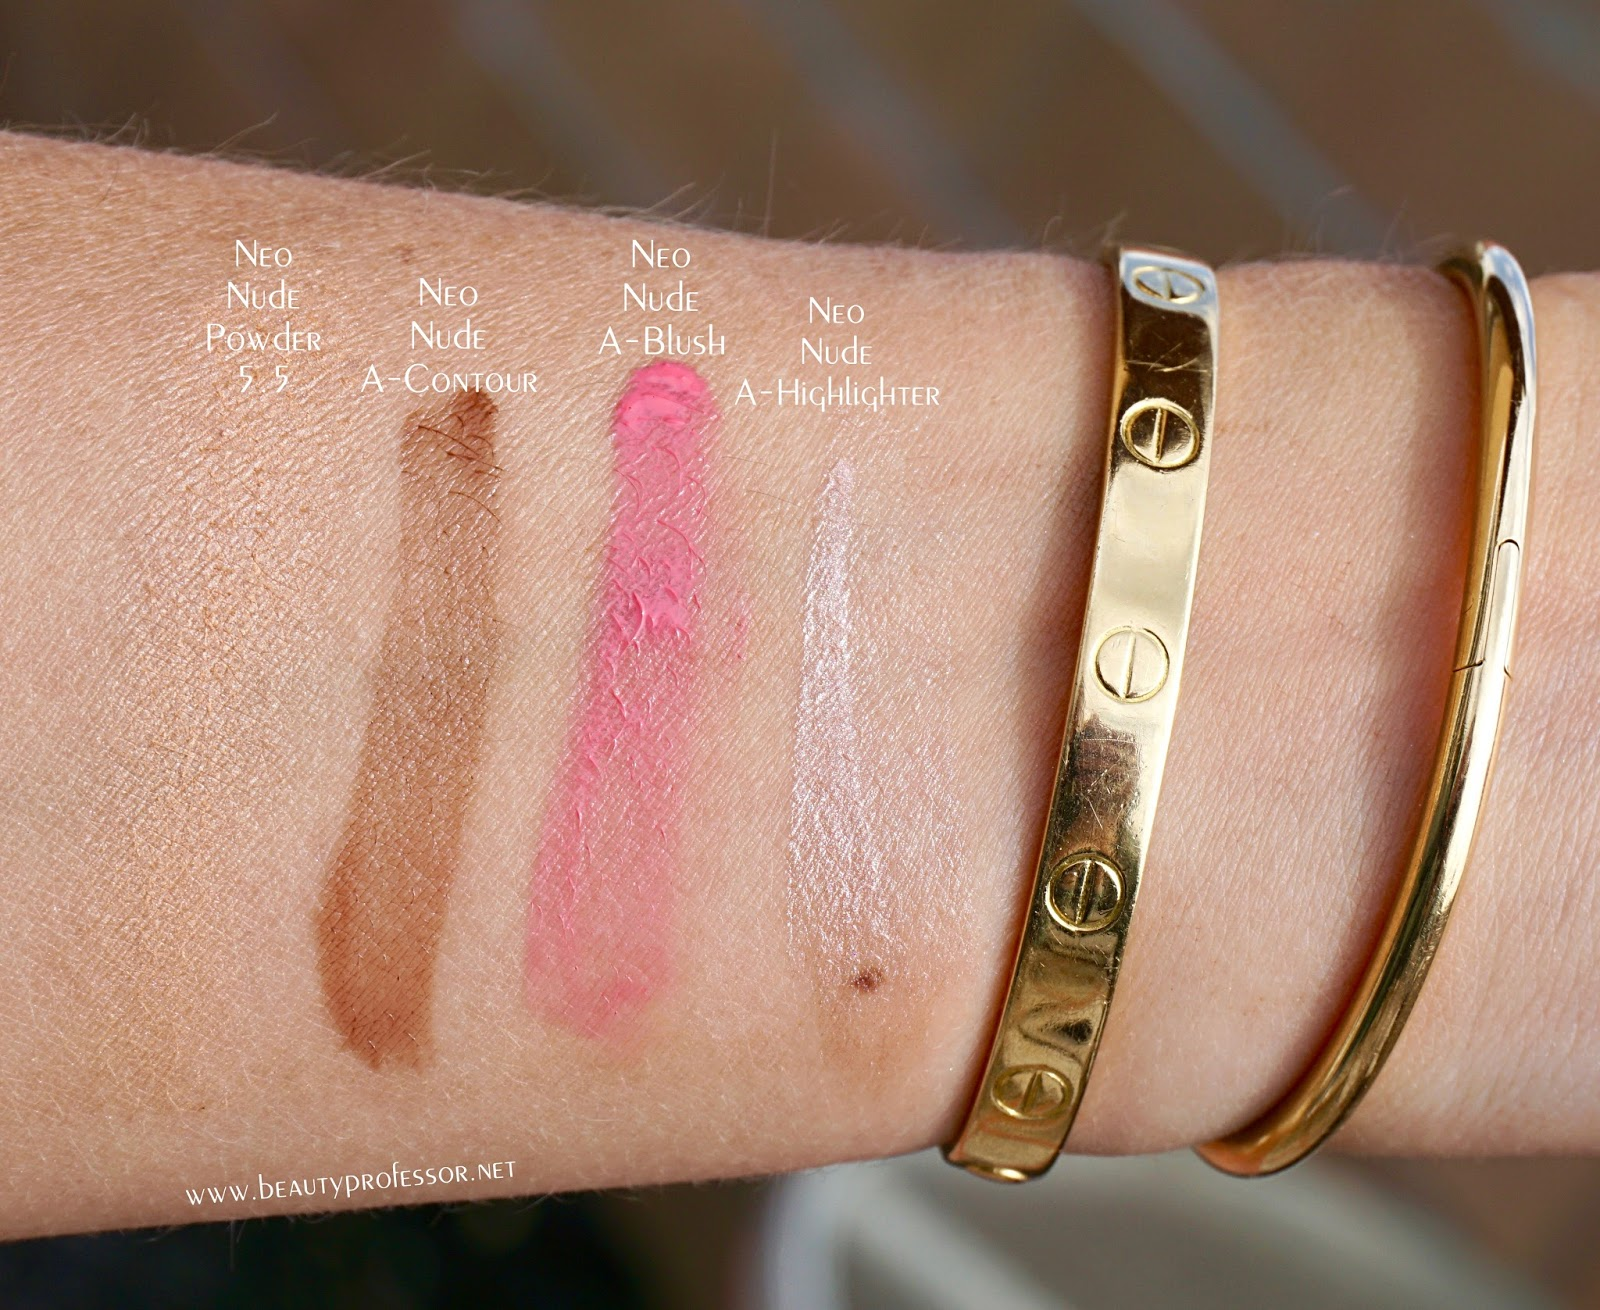 armani neo nude collection swatches